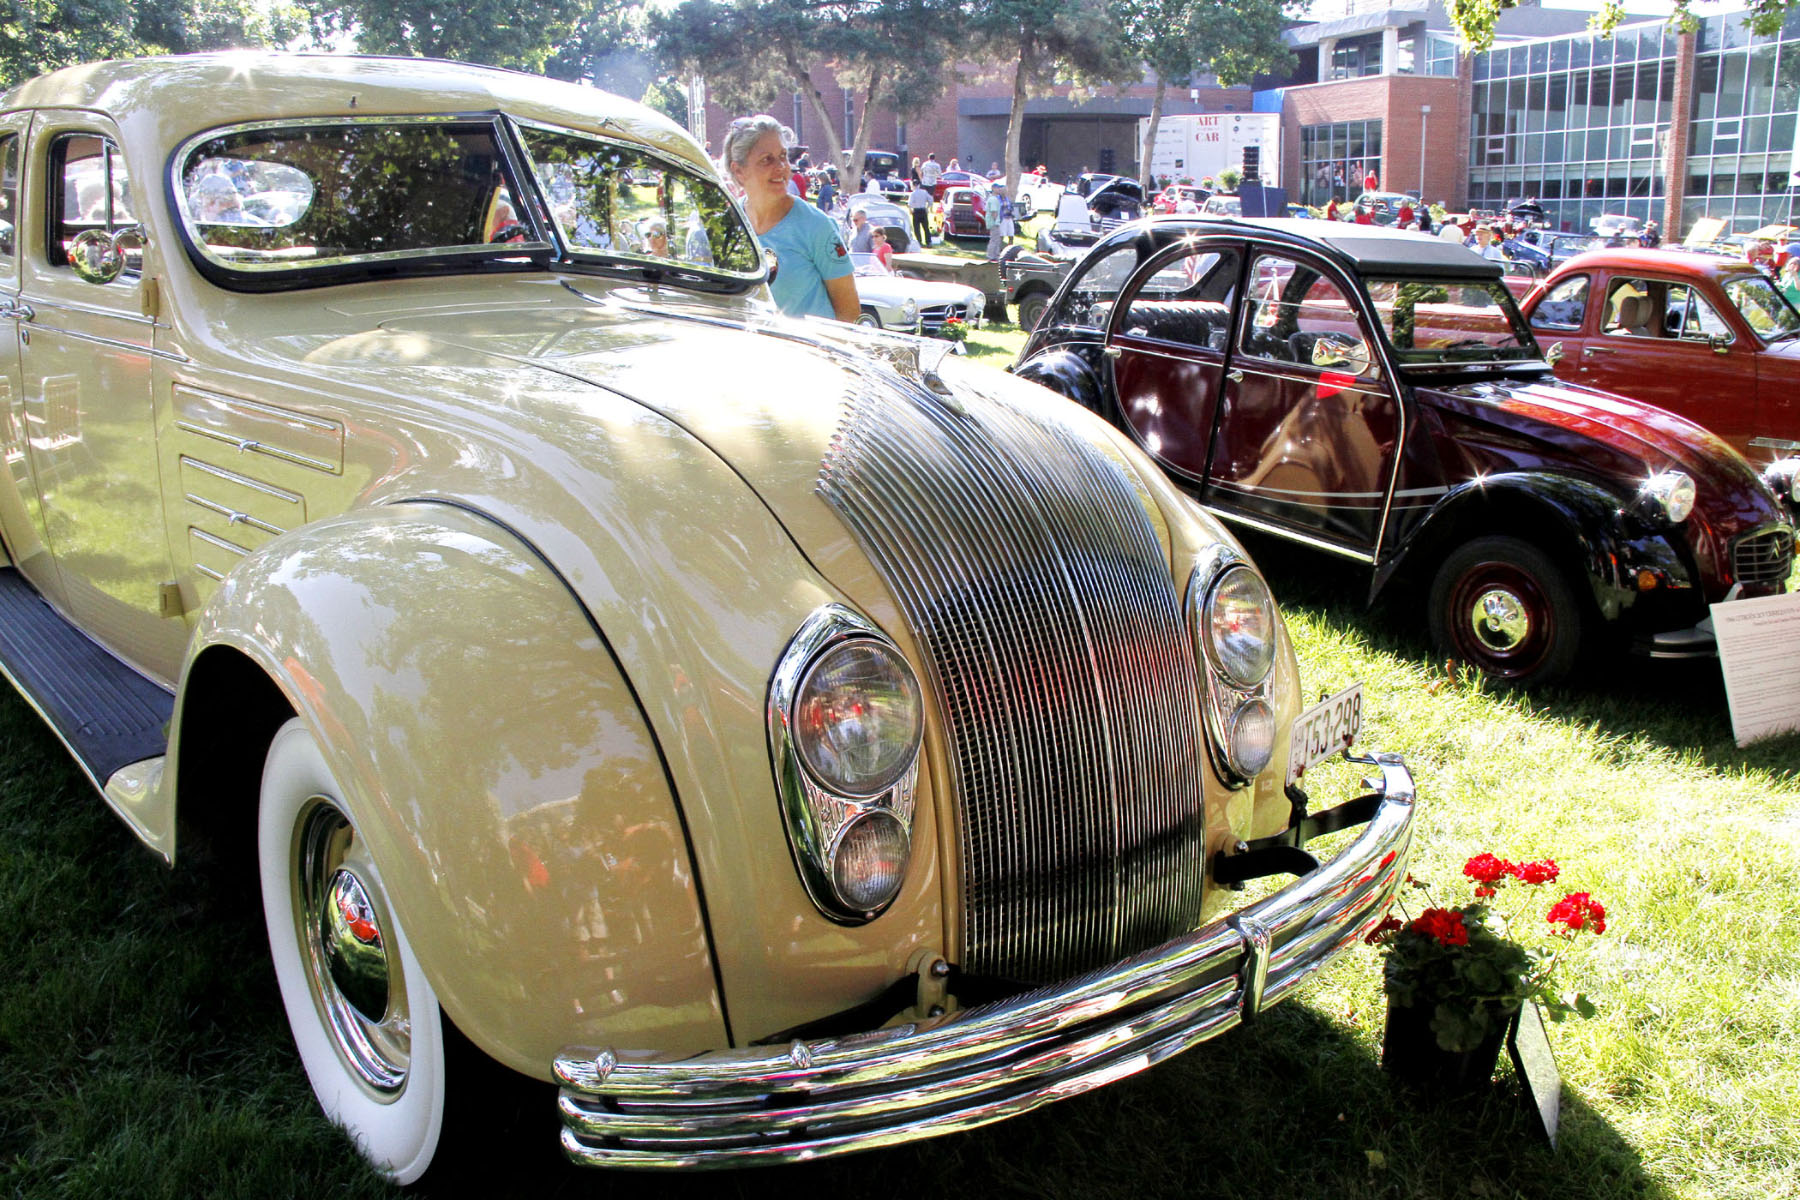 CHRYSLER-AIRFLOW-WELL-ENGINEERED-BUT-AHEAD-OF-ITS-TIME